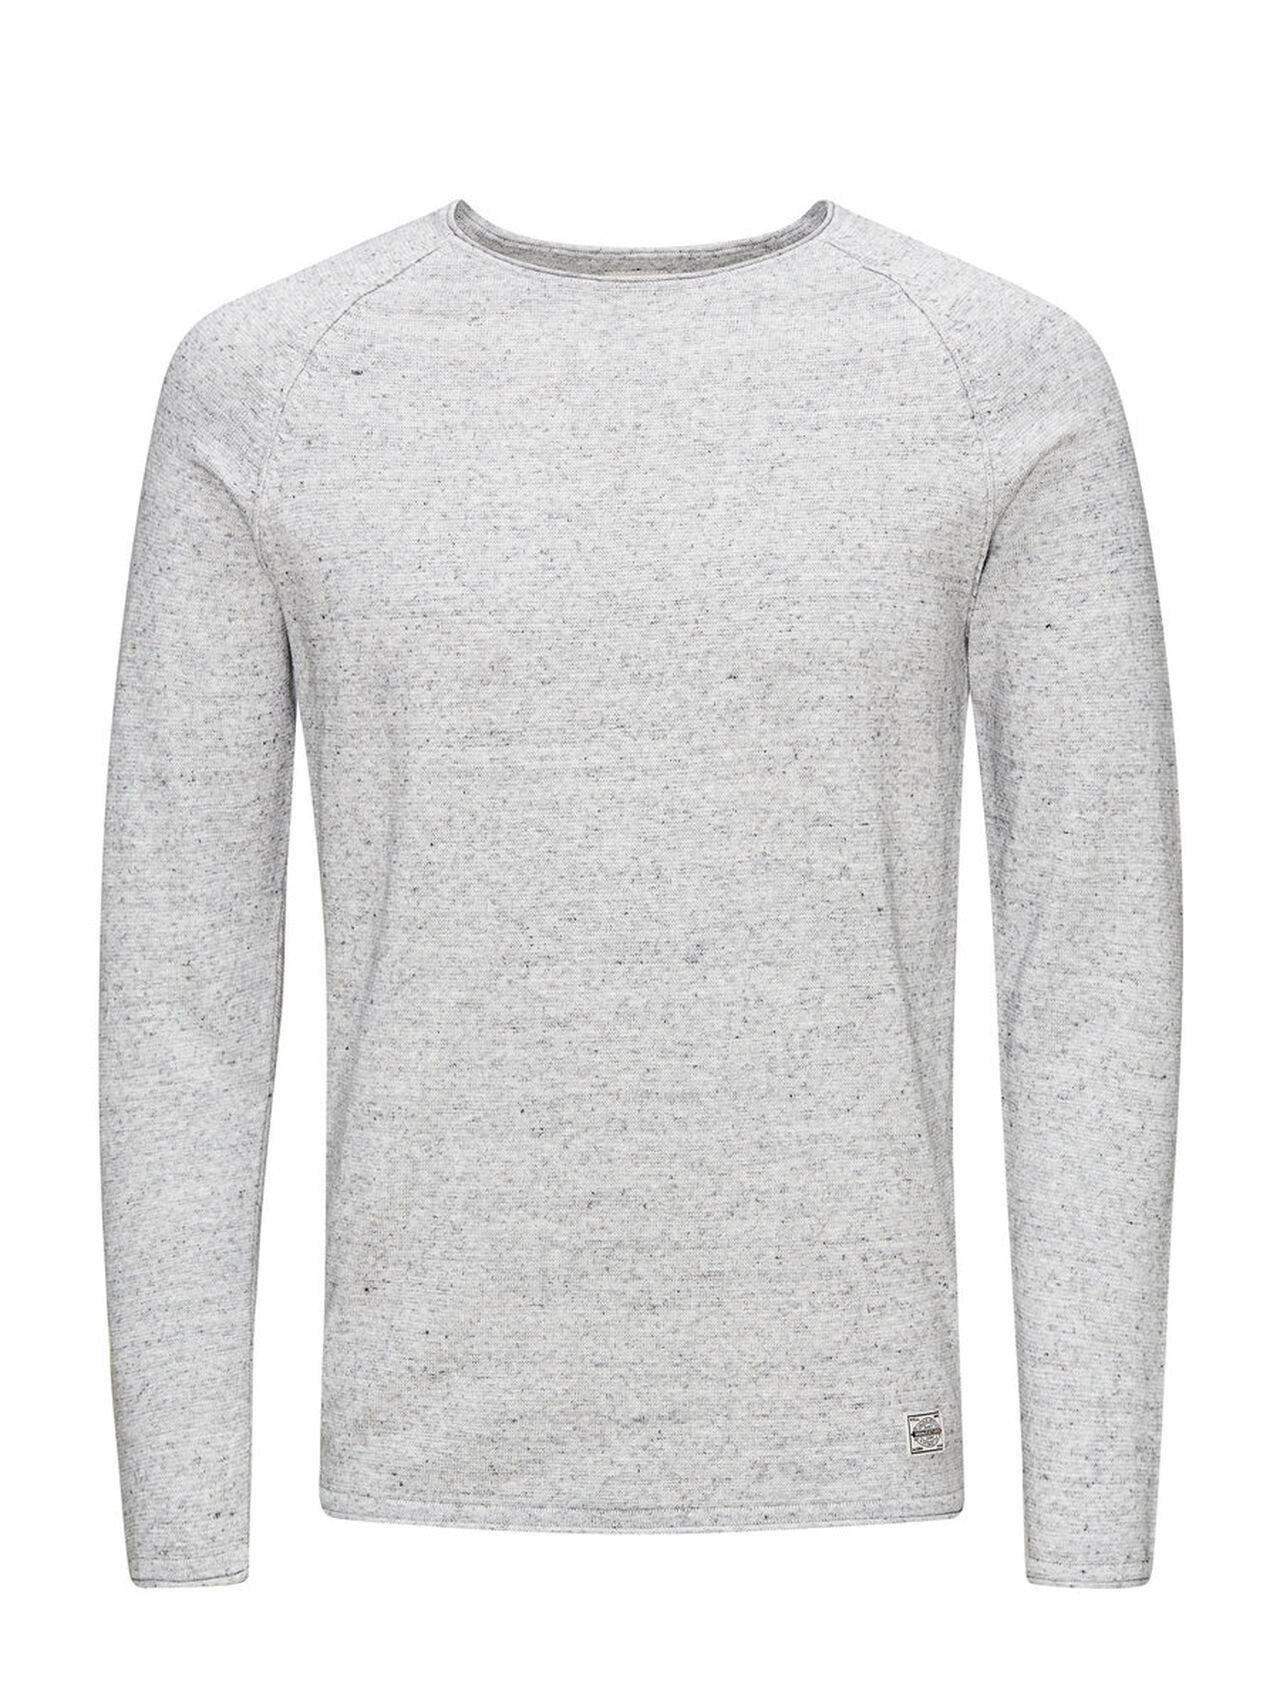 Jack & Jones Classic Knitted Pullover LightGreyMelange